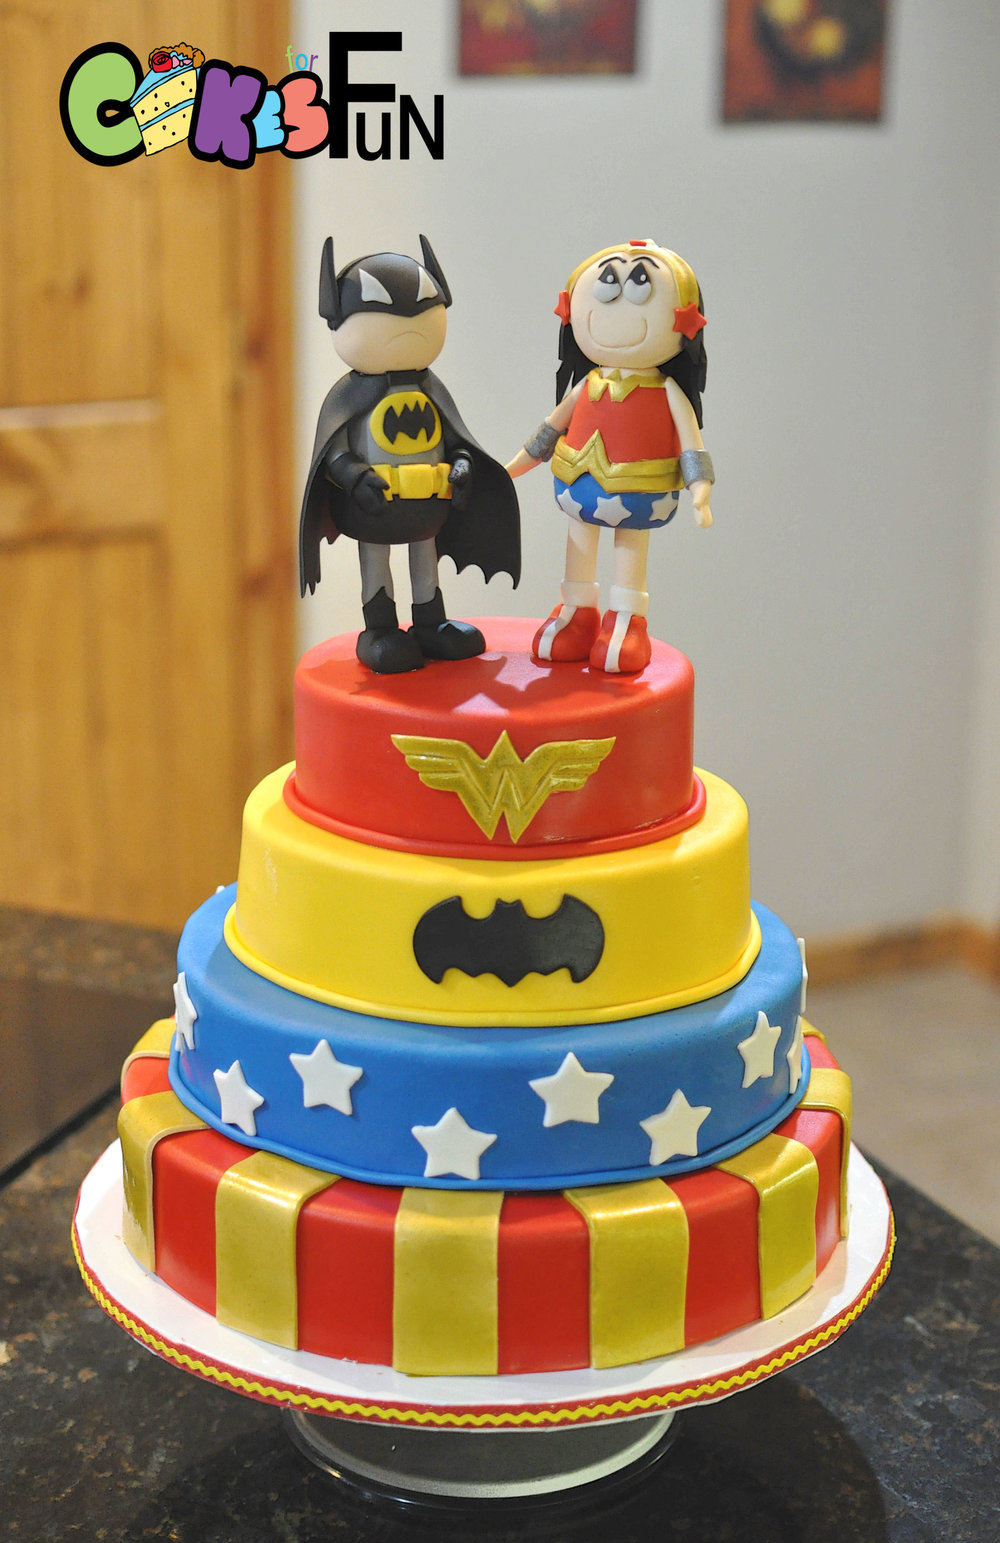 Batman and wonderwoman.jpg